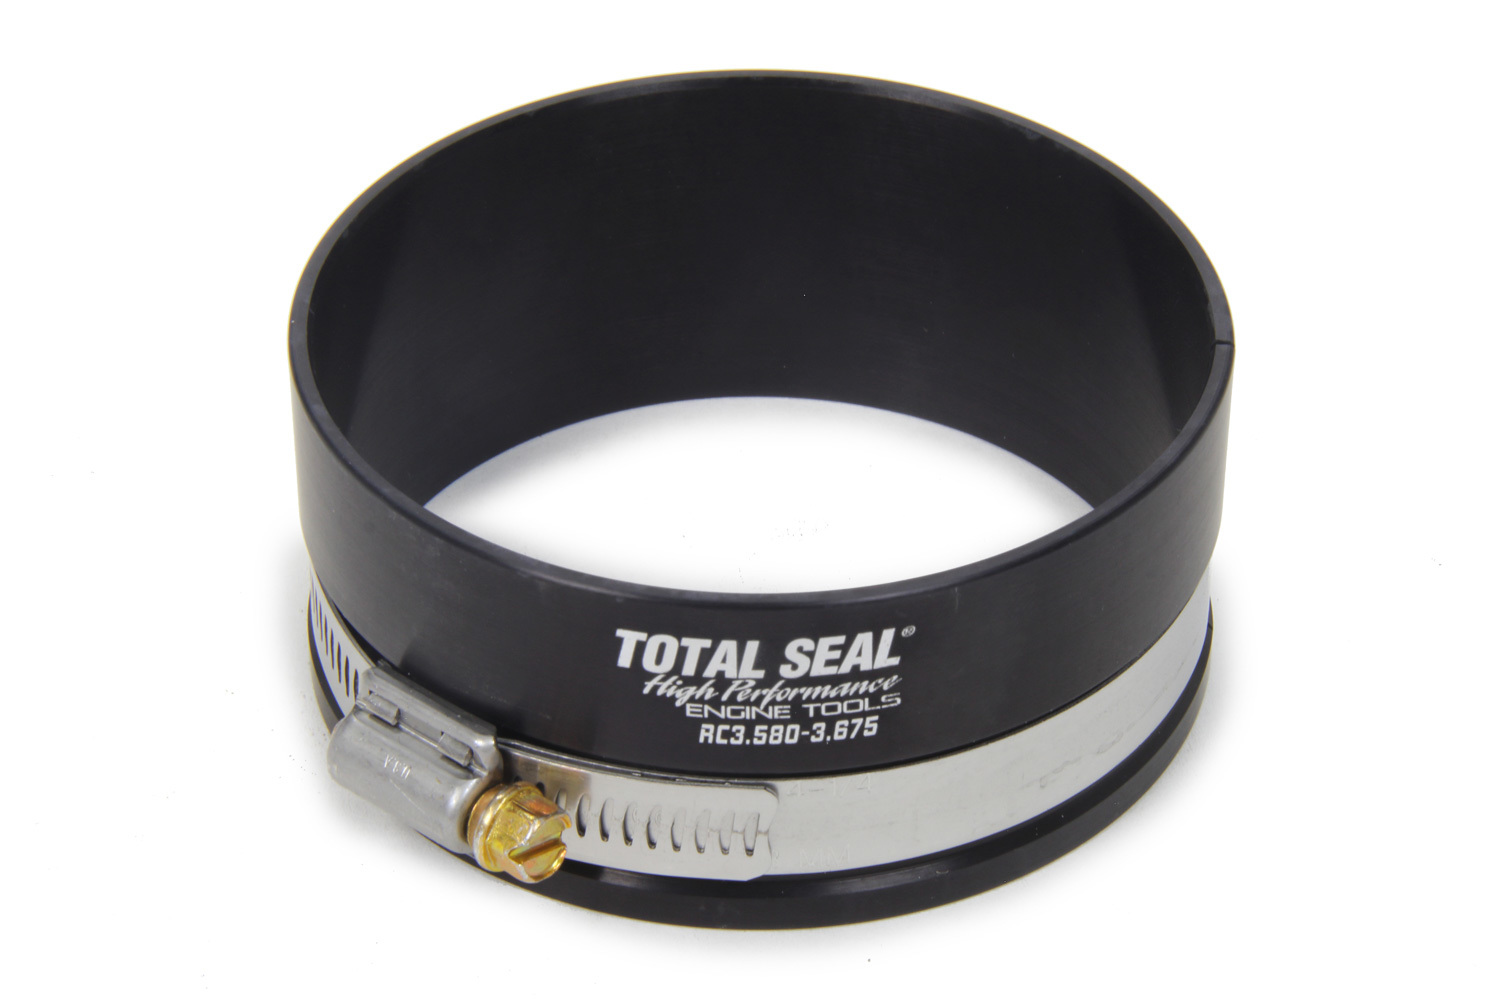 Total Seal RC3.580-3.675 Piston Ring Compressor, 3.580-3.675 in Bore, Adjustable, Aluminum, Black Anodized, Each